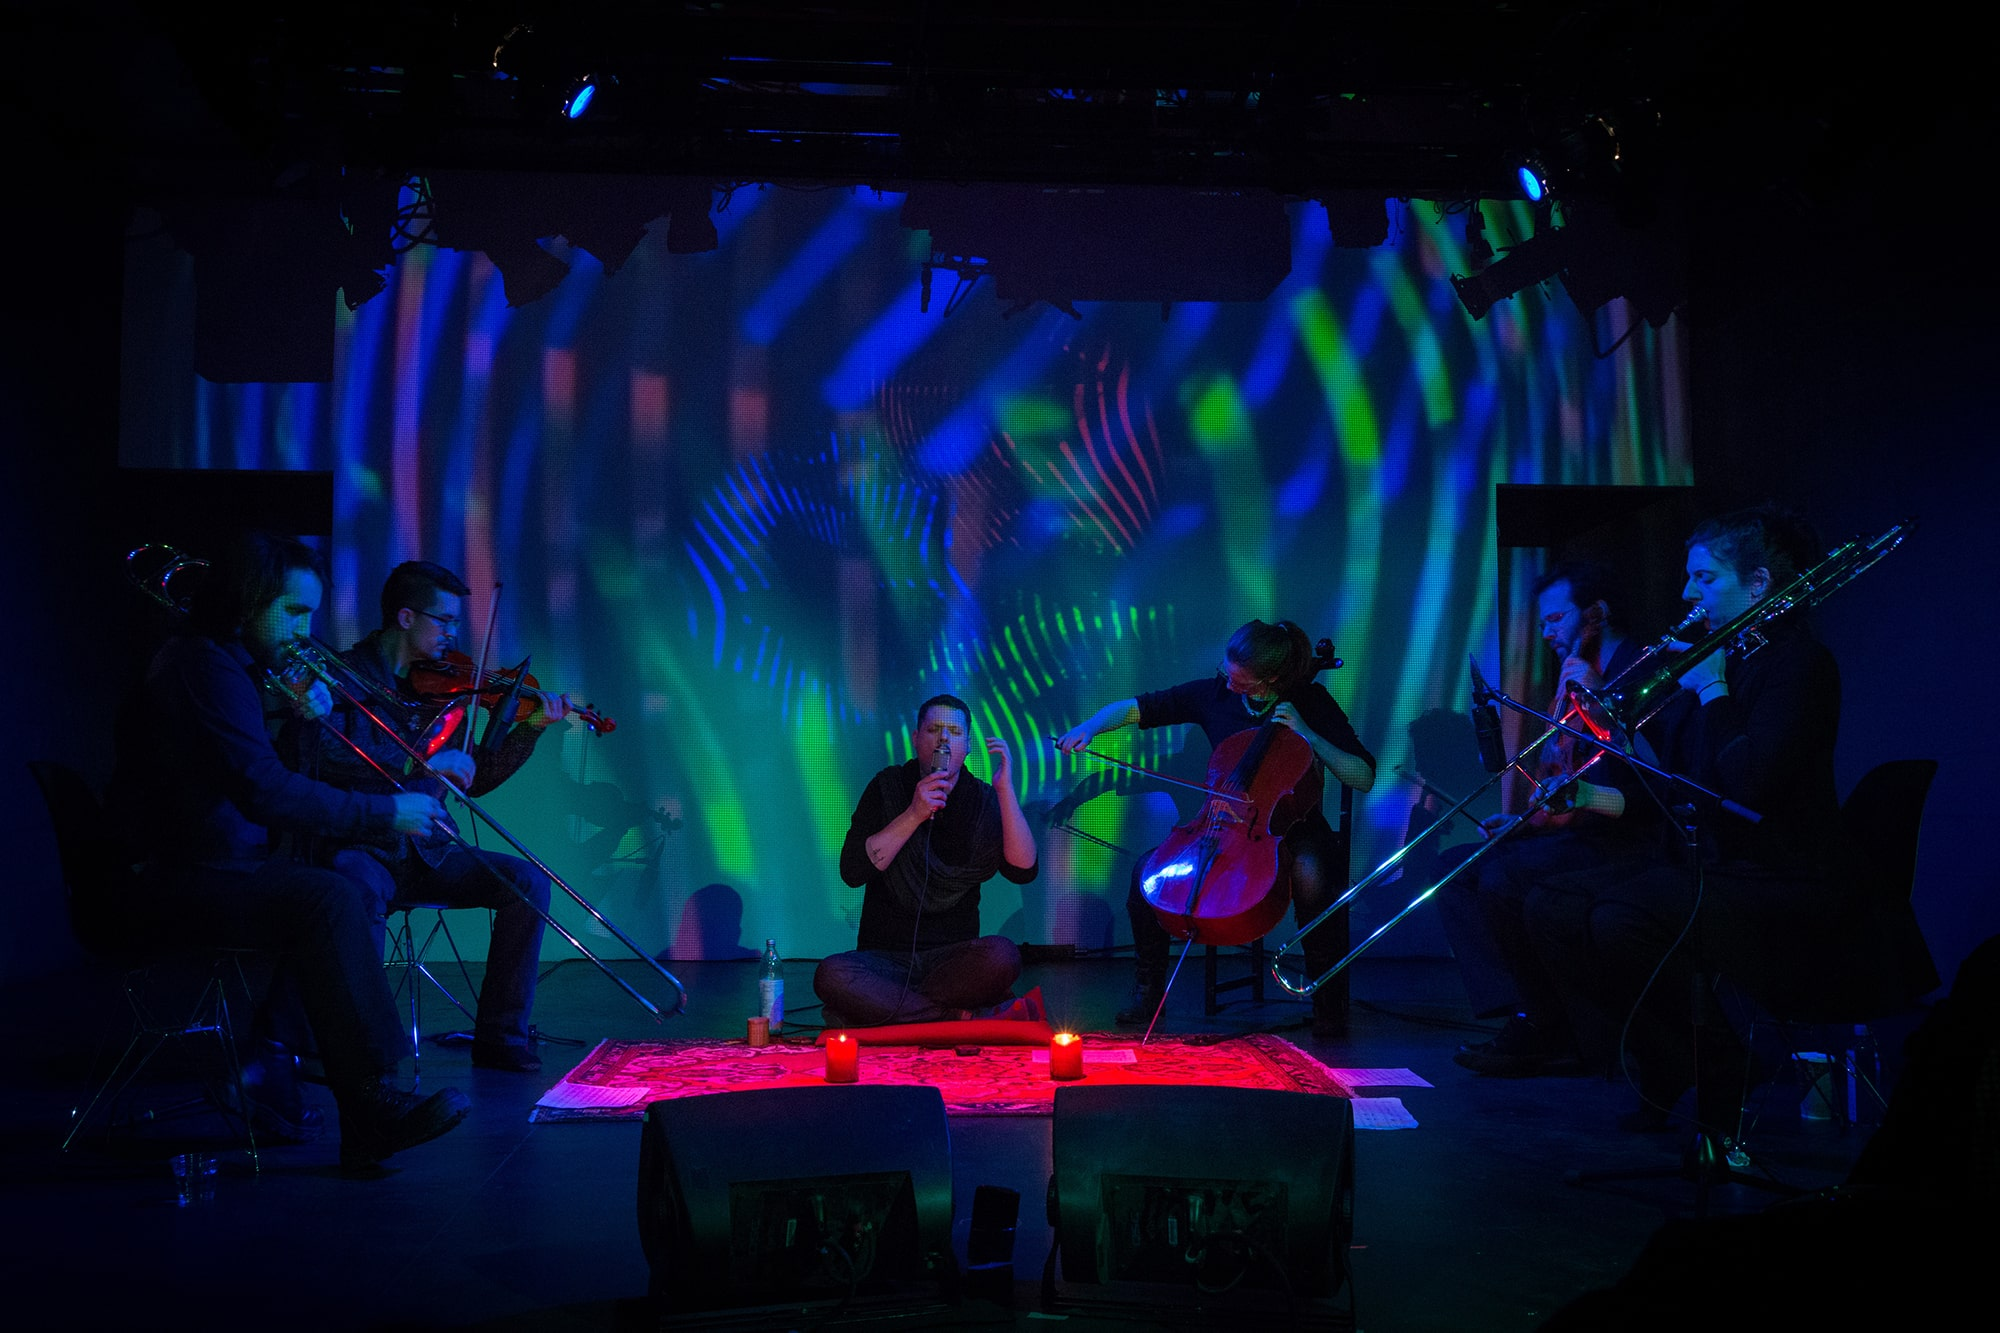 Randy Gibson and Ensemble performing Gibson's <em>Apparitions of The Four Pillars in The Midwinter Starfield under The Astral 789 Duet</em> at the 2014 Avant Music Festival